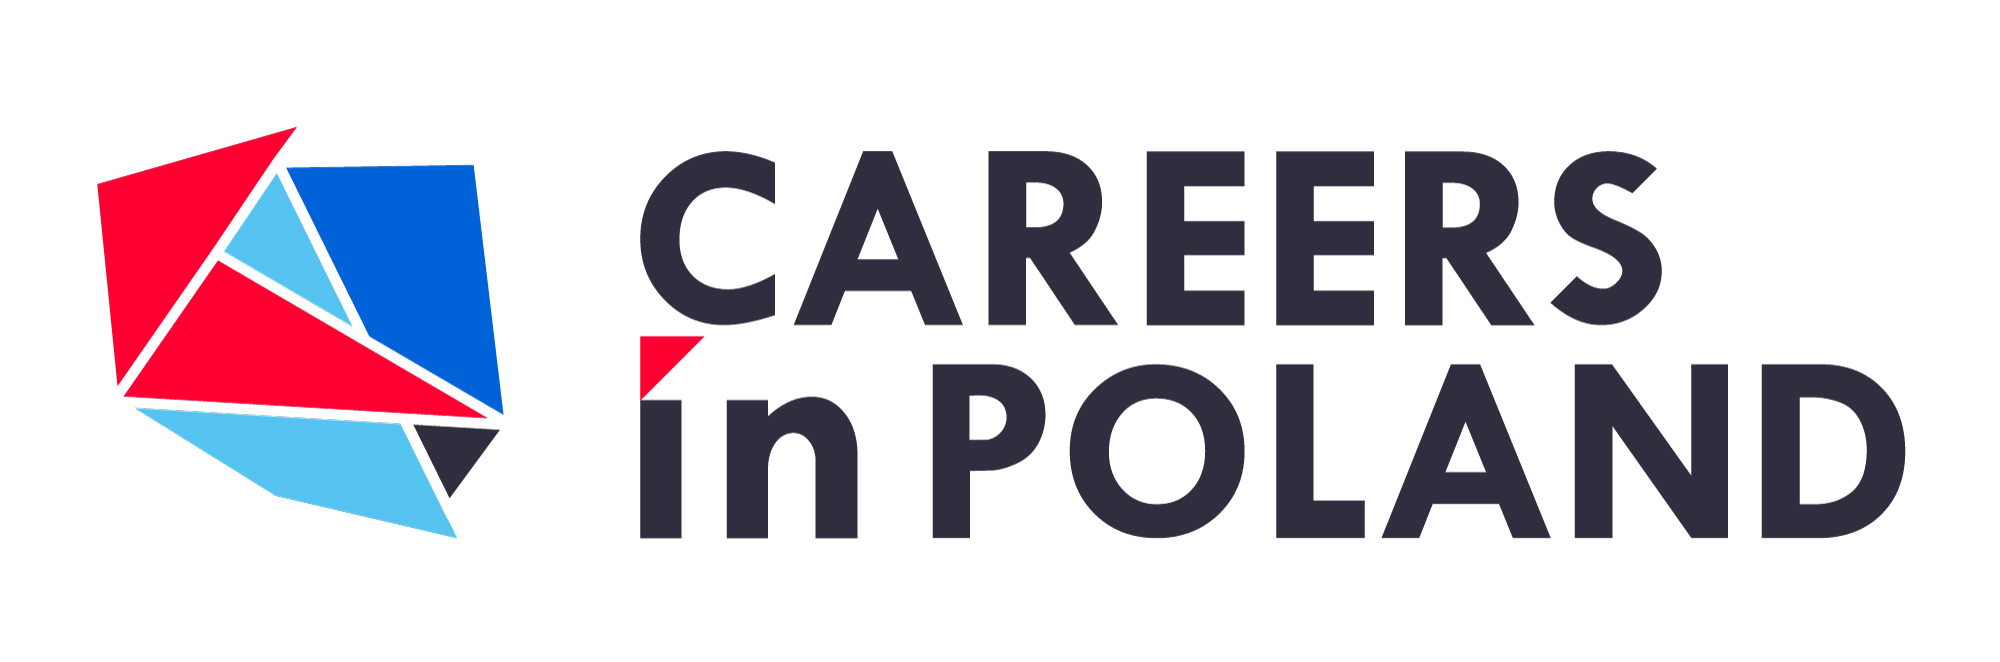 careers in poland_new